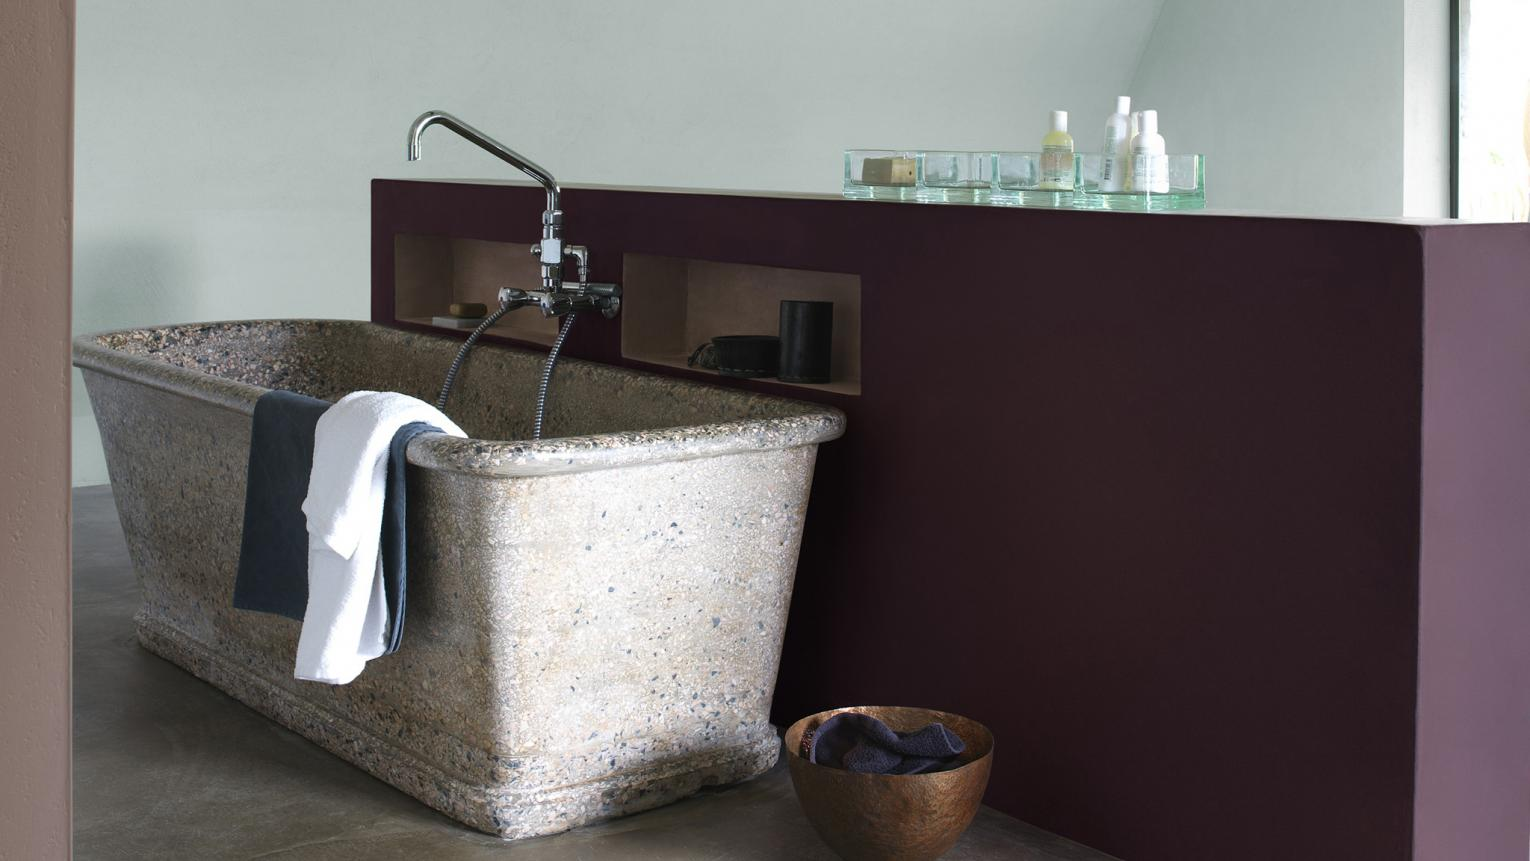 Dreaming of a spa retreat? Create a tranquil haven with textured surfaces and a colour scheme inspired by nature.